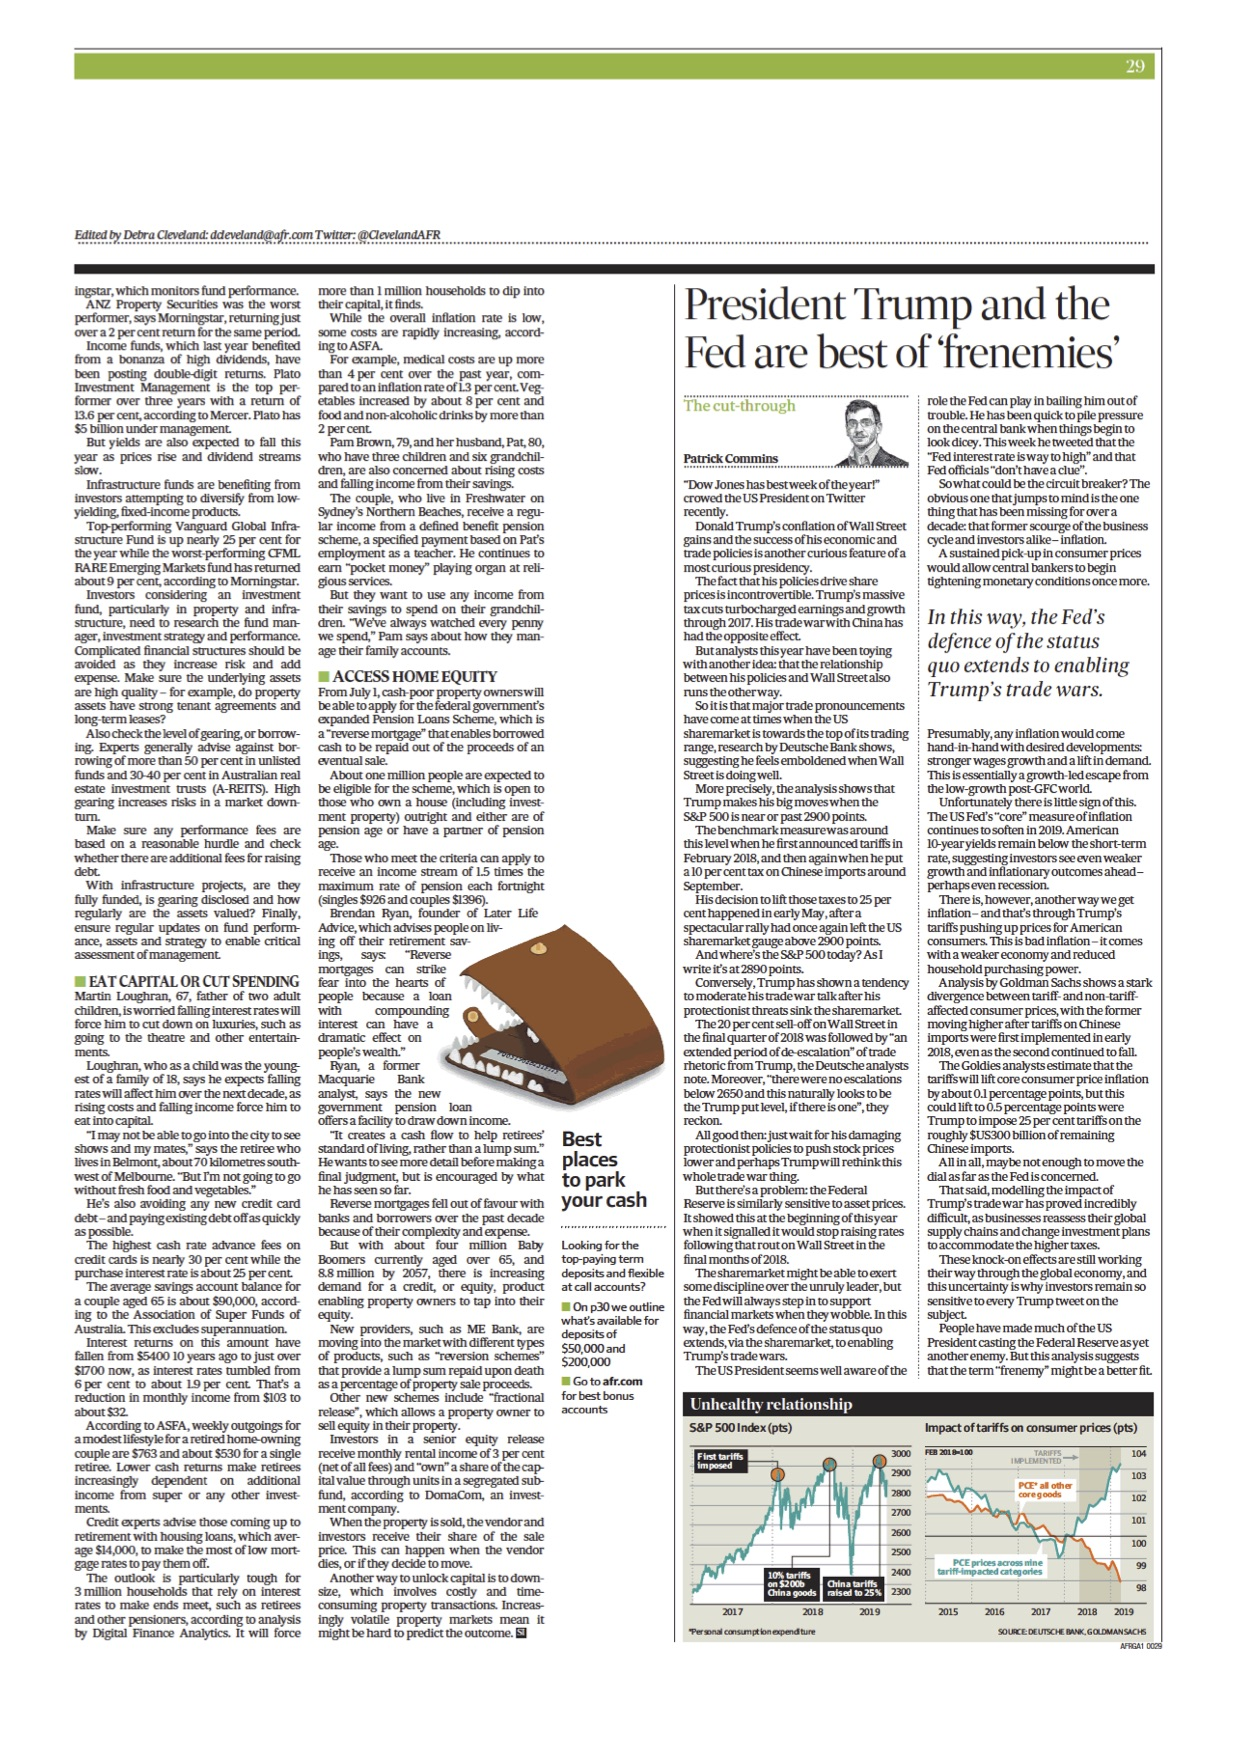 Financial Review, Saturday, June 15, 2019, pages from 28 to 28 copy.jpg